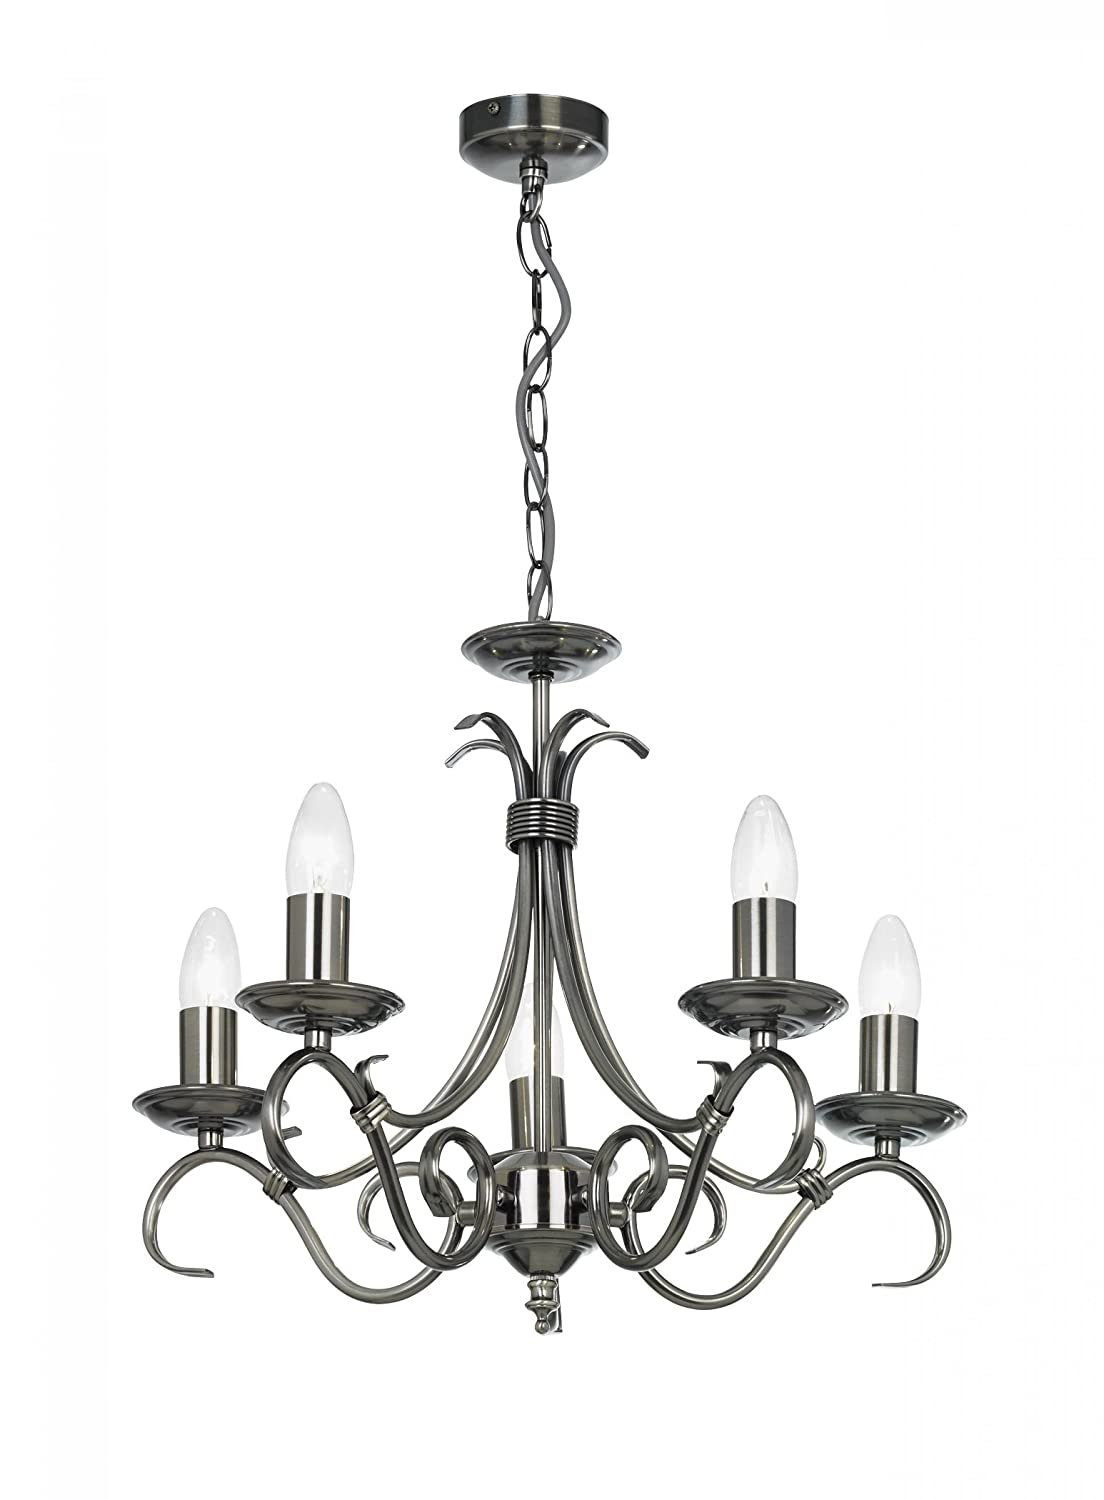 5 Light Candle Chandelier Finish: Antique Silver Endon